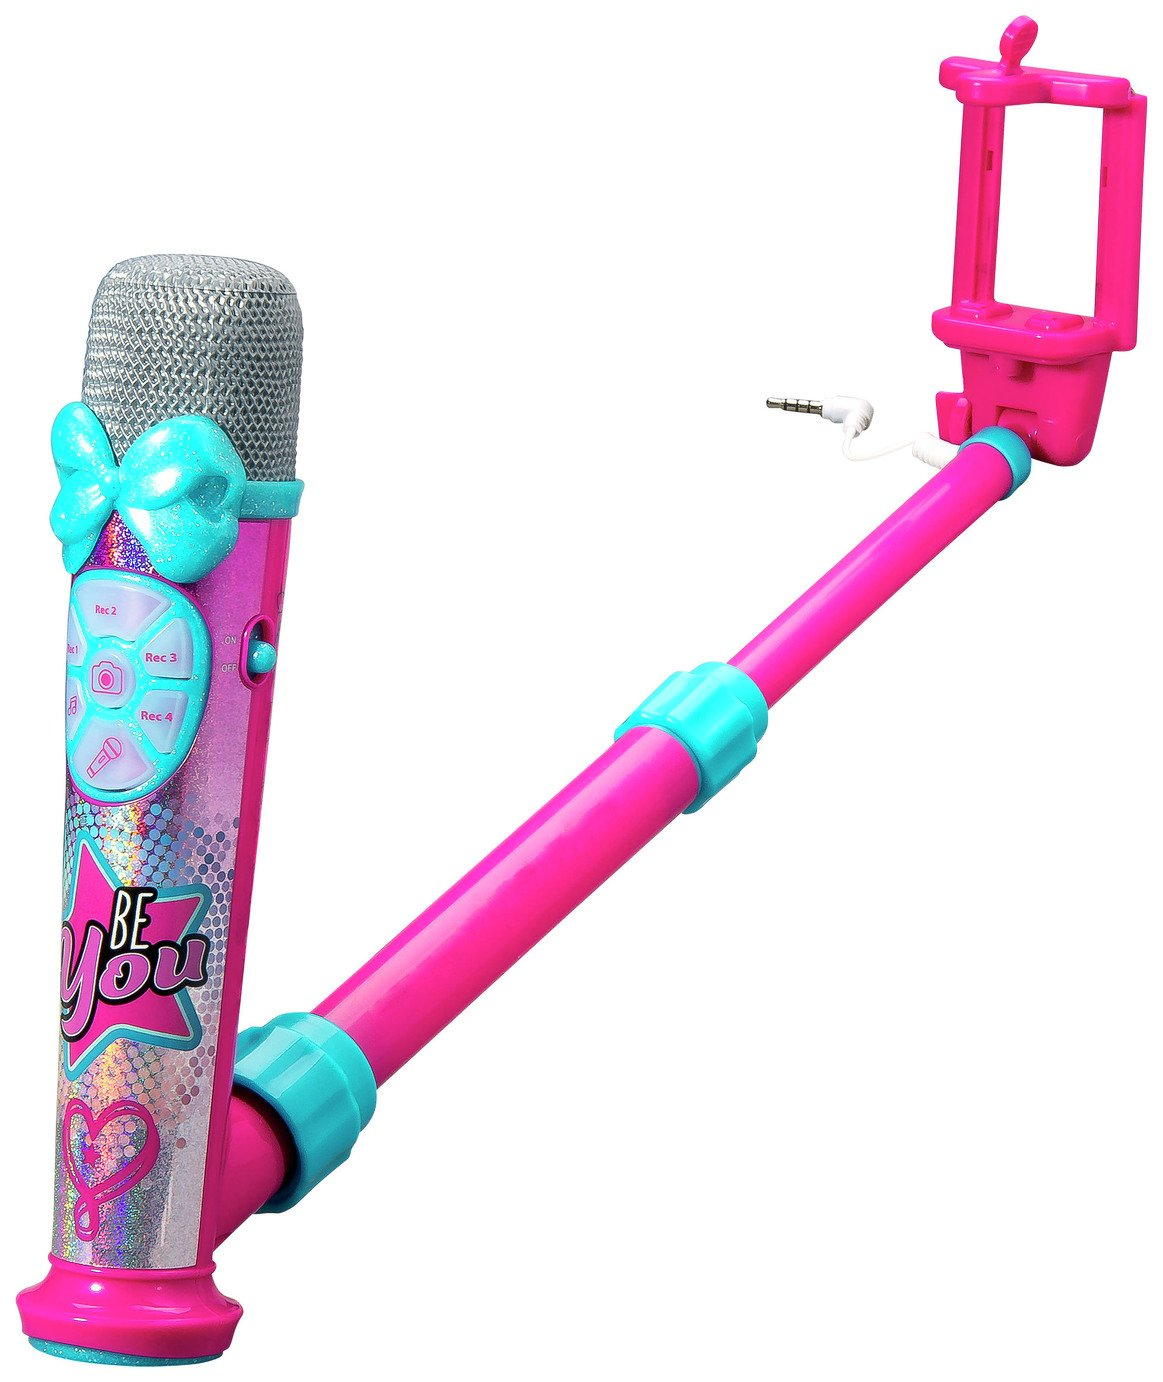 Nunudes Co Uk Jojo: Jojo Siwa: Find Offers Online And Compare Prices At